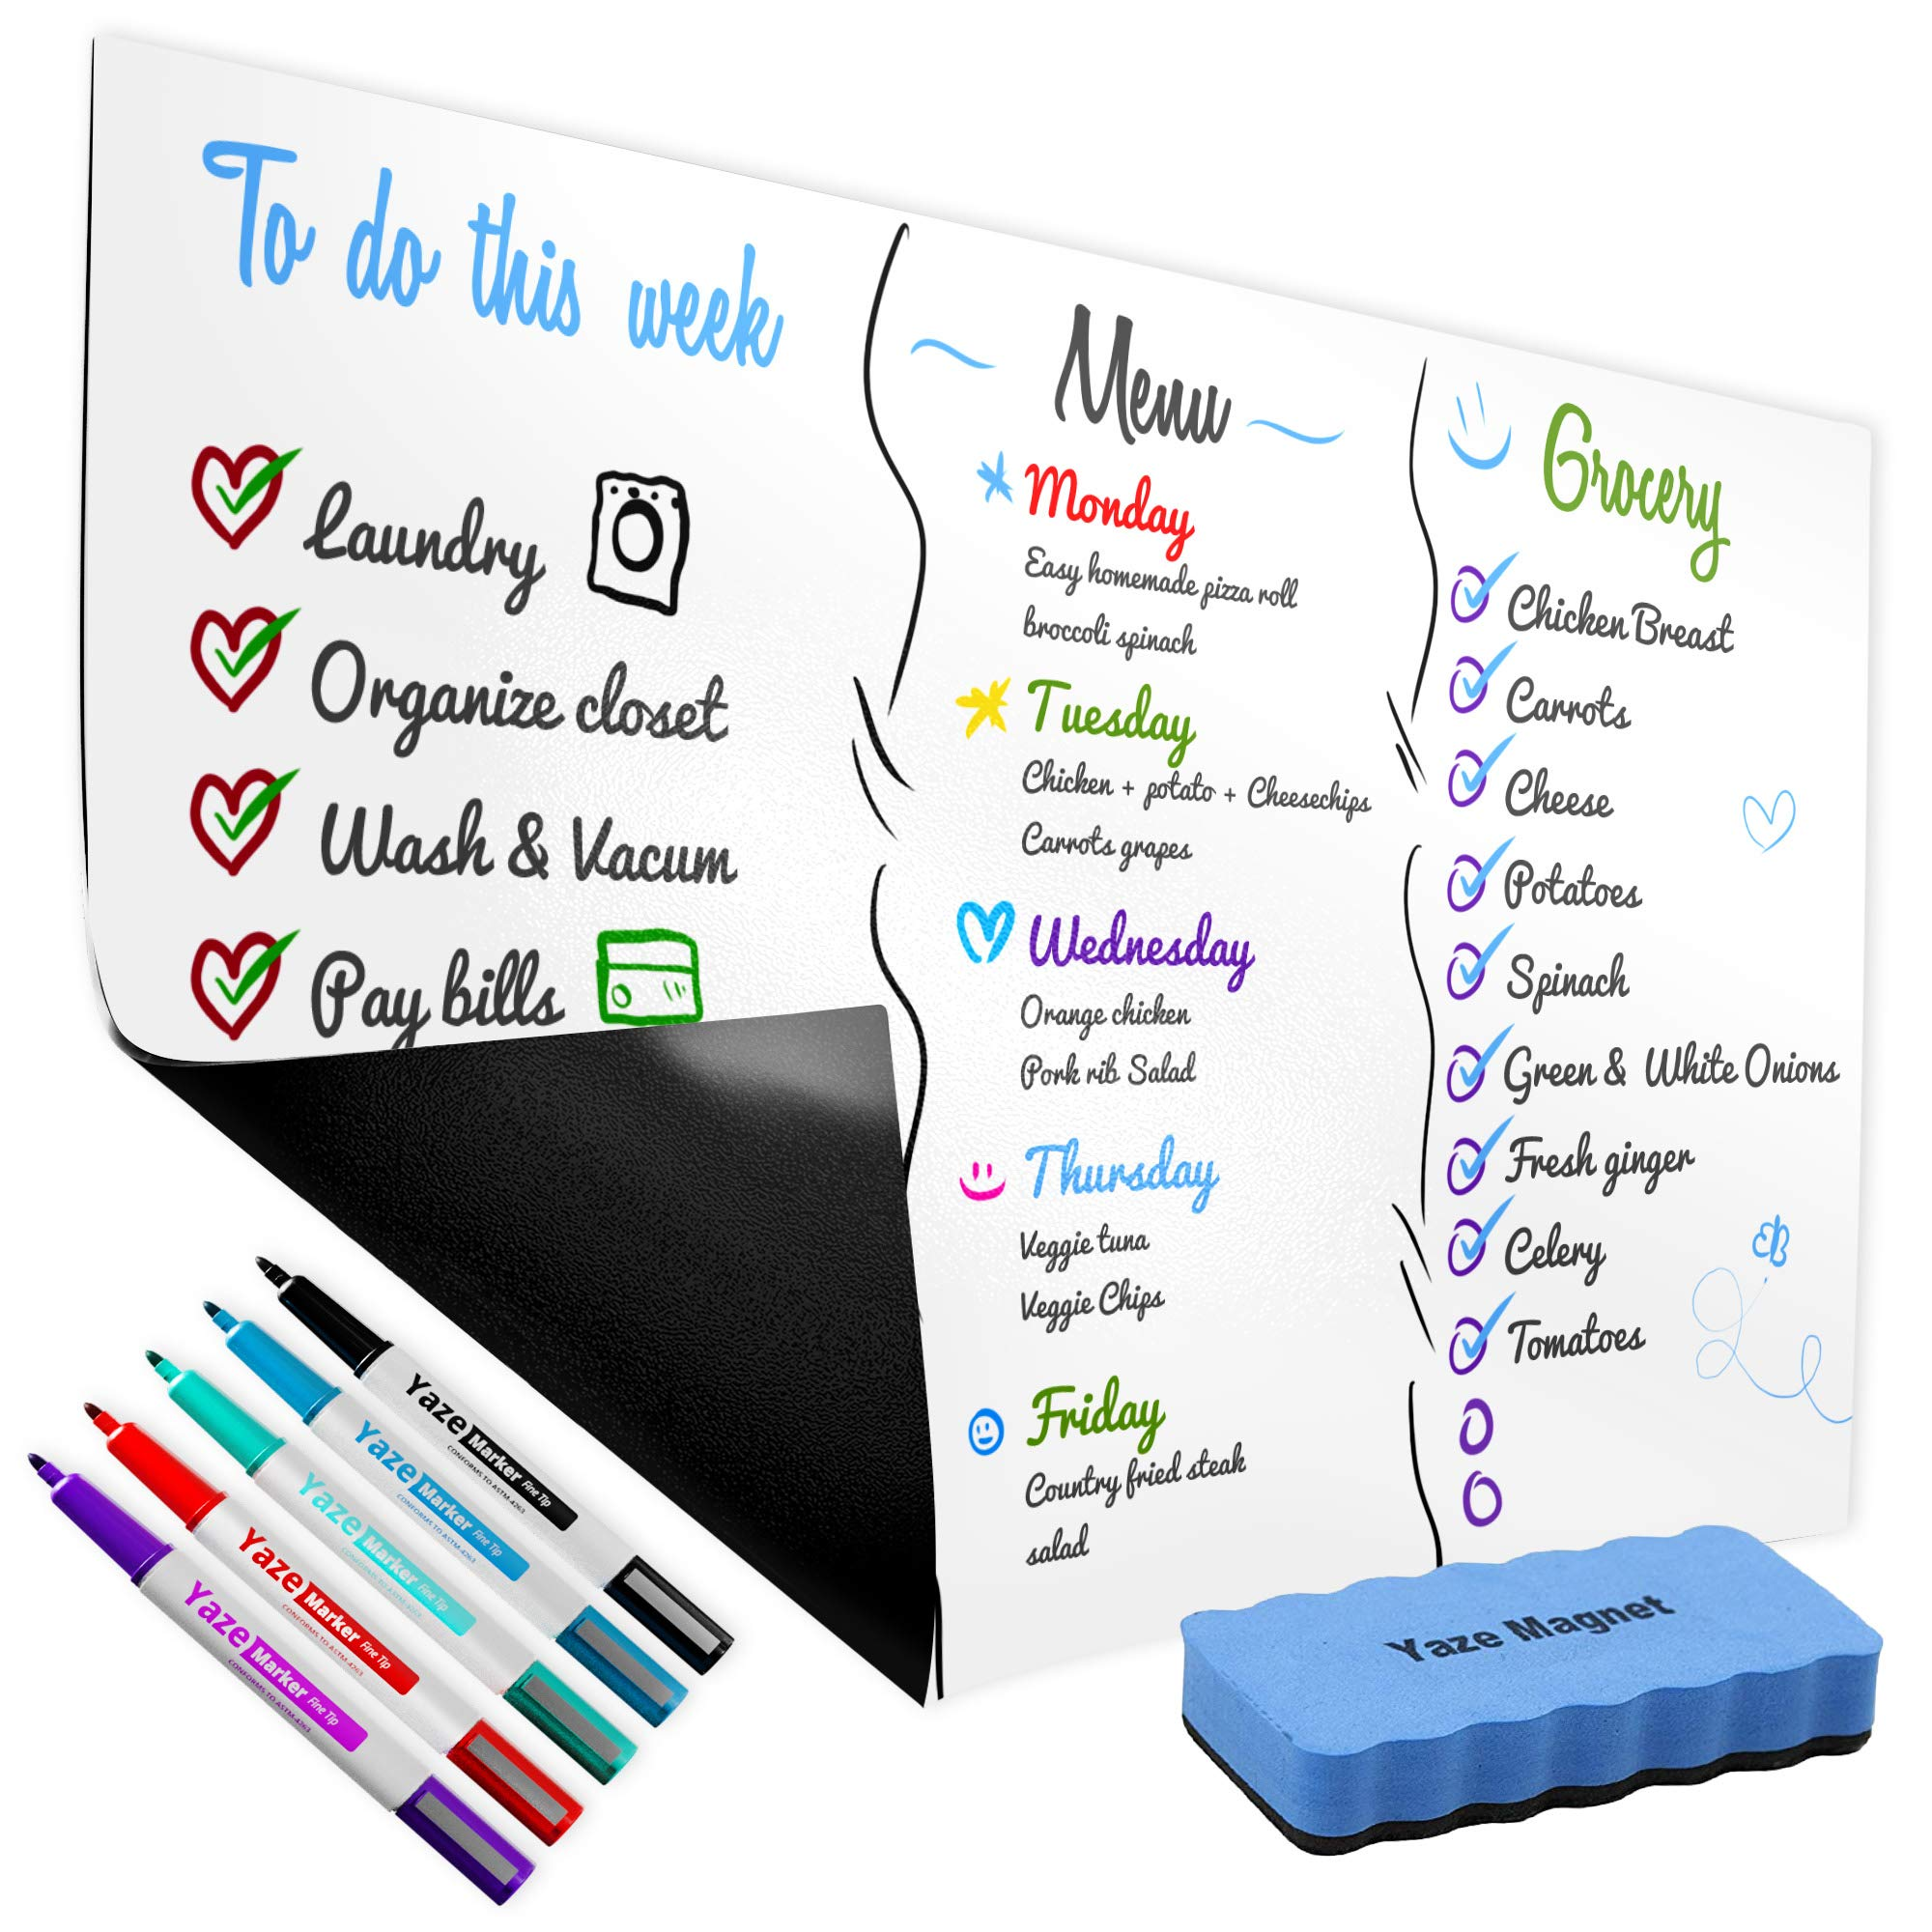 Magnetic Dry Erase Whiteboard Sheet for Kitchen Fridge - 17X11'' - 5 Markers and Big Eraser with Magnets - Stain Resistant Surface - Refrigerator Grocery List - White Board Organizer and Planner by Yaze Magnet